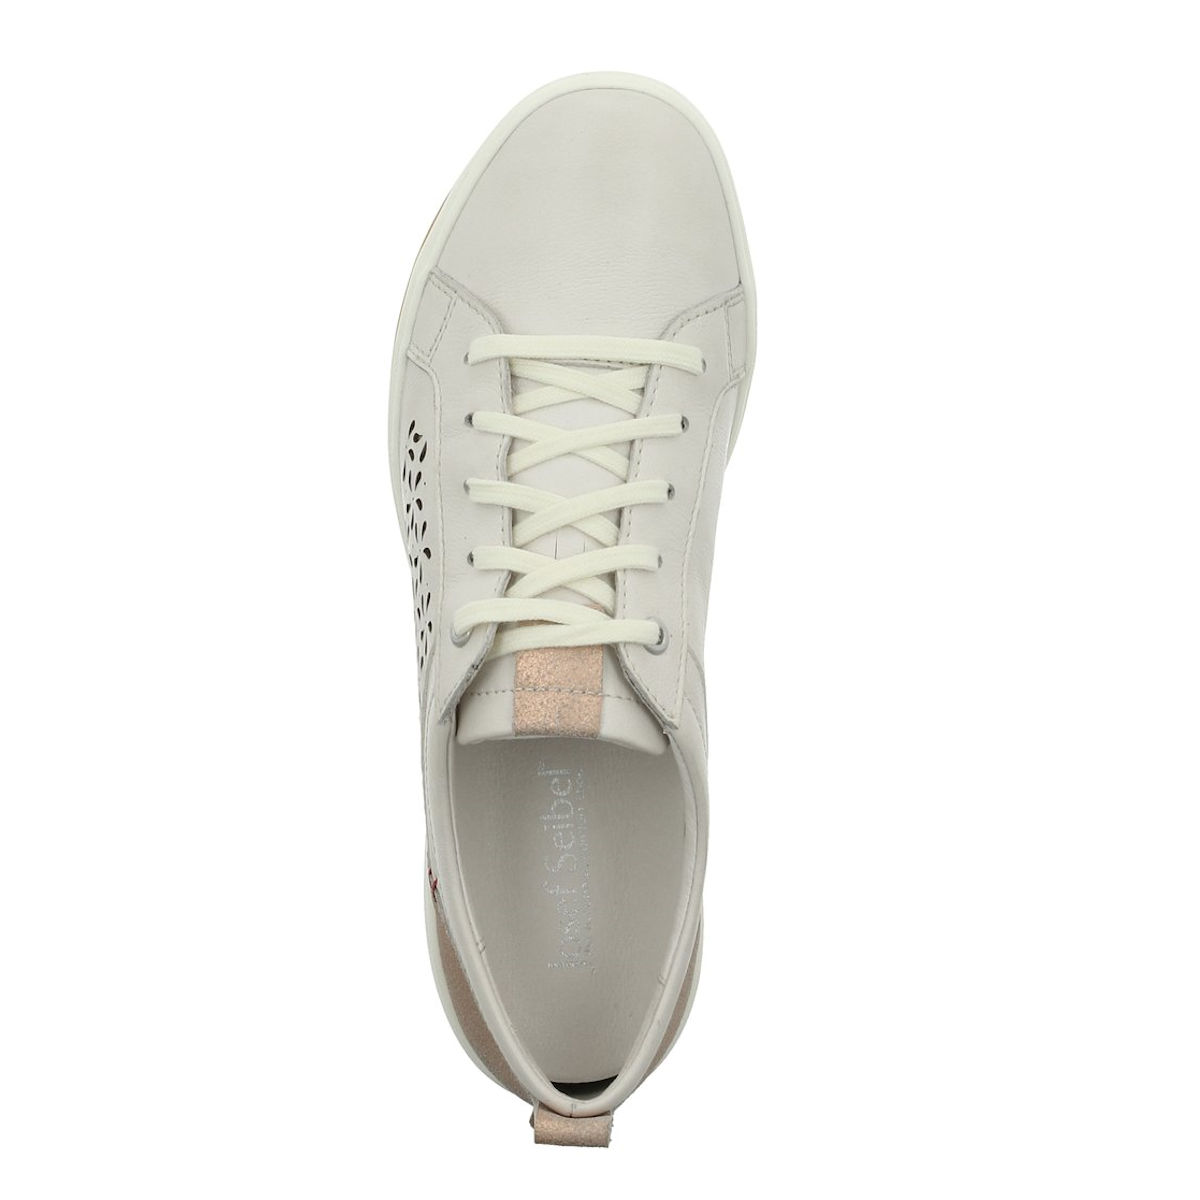 Josef Seibel Caren 06 - Womens Casual White Leather Trainer